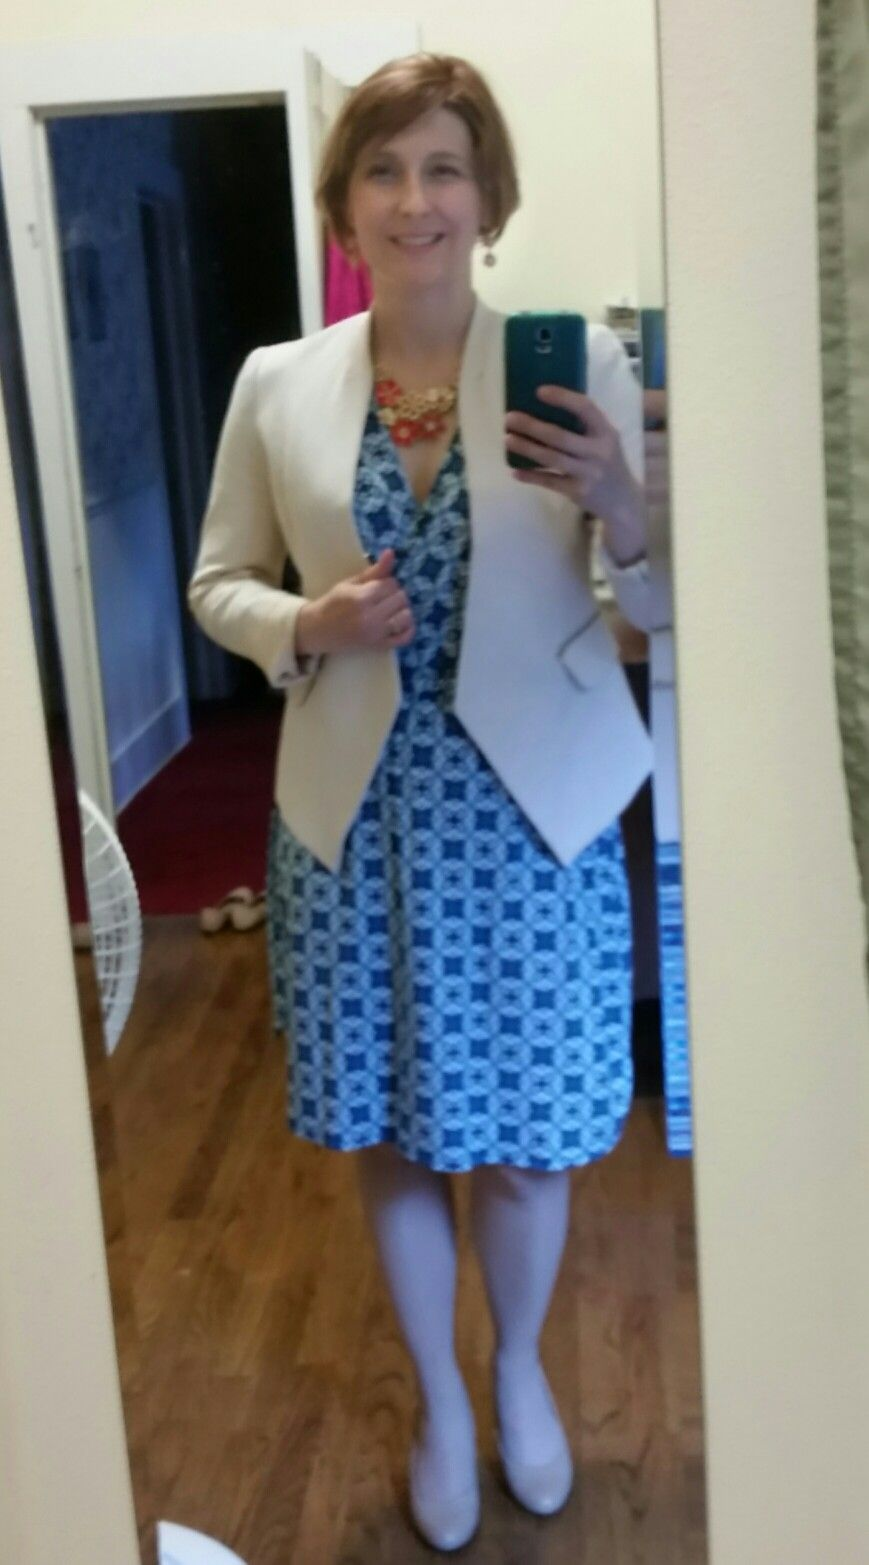 08138d64be71 My May @stitchfix Fix: Market and Spruce Kessie knit faux wrap dress with  Pixley Tumara knit collarless blazer. Necklace from Kohl's, Ana nude wedges  from ...